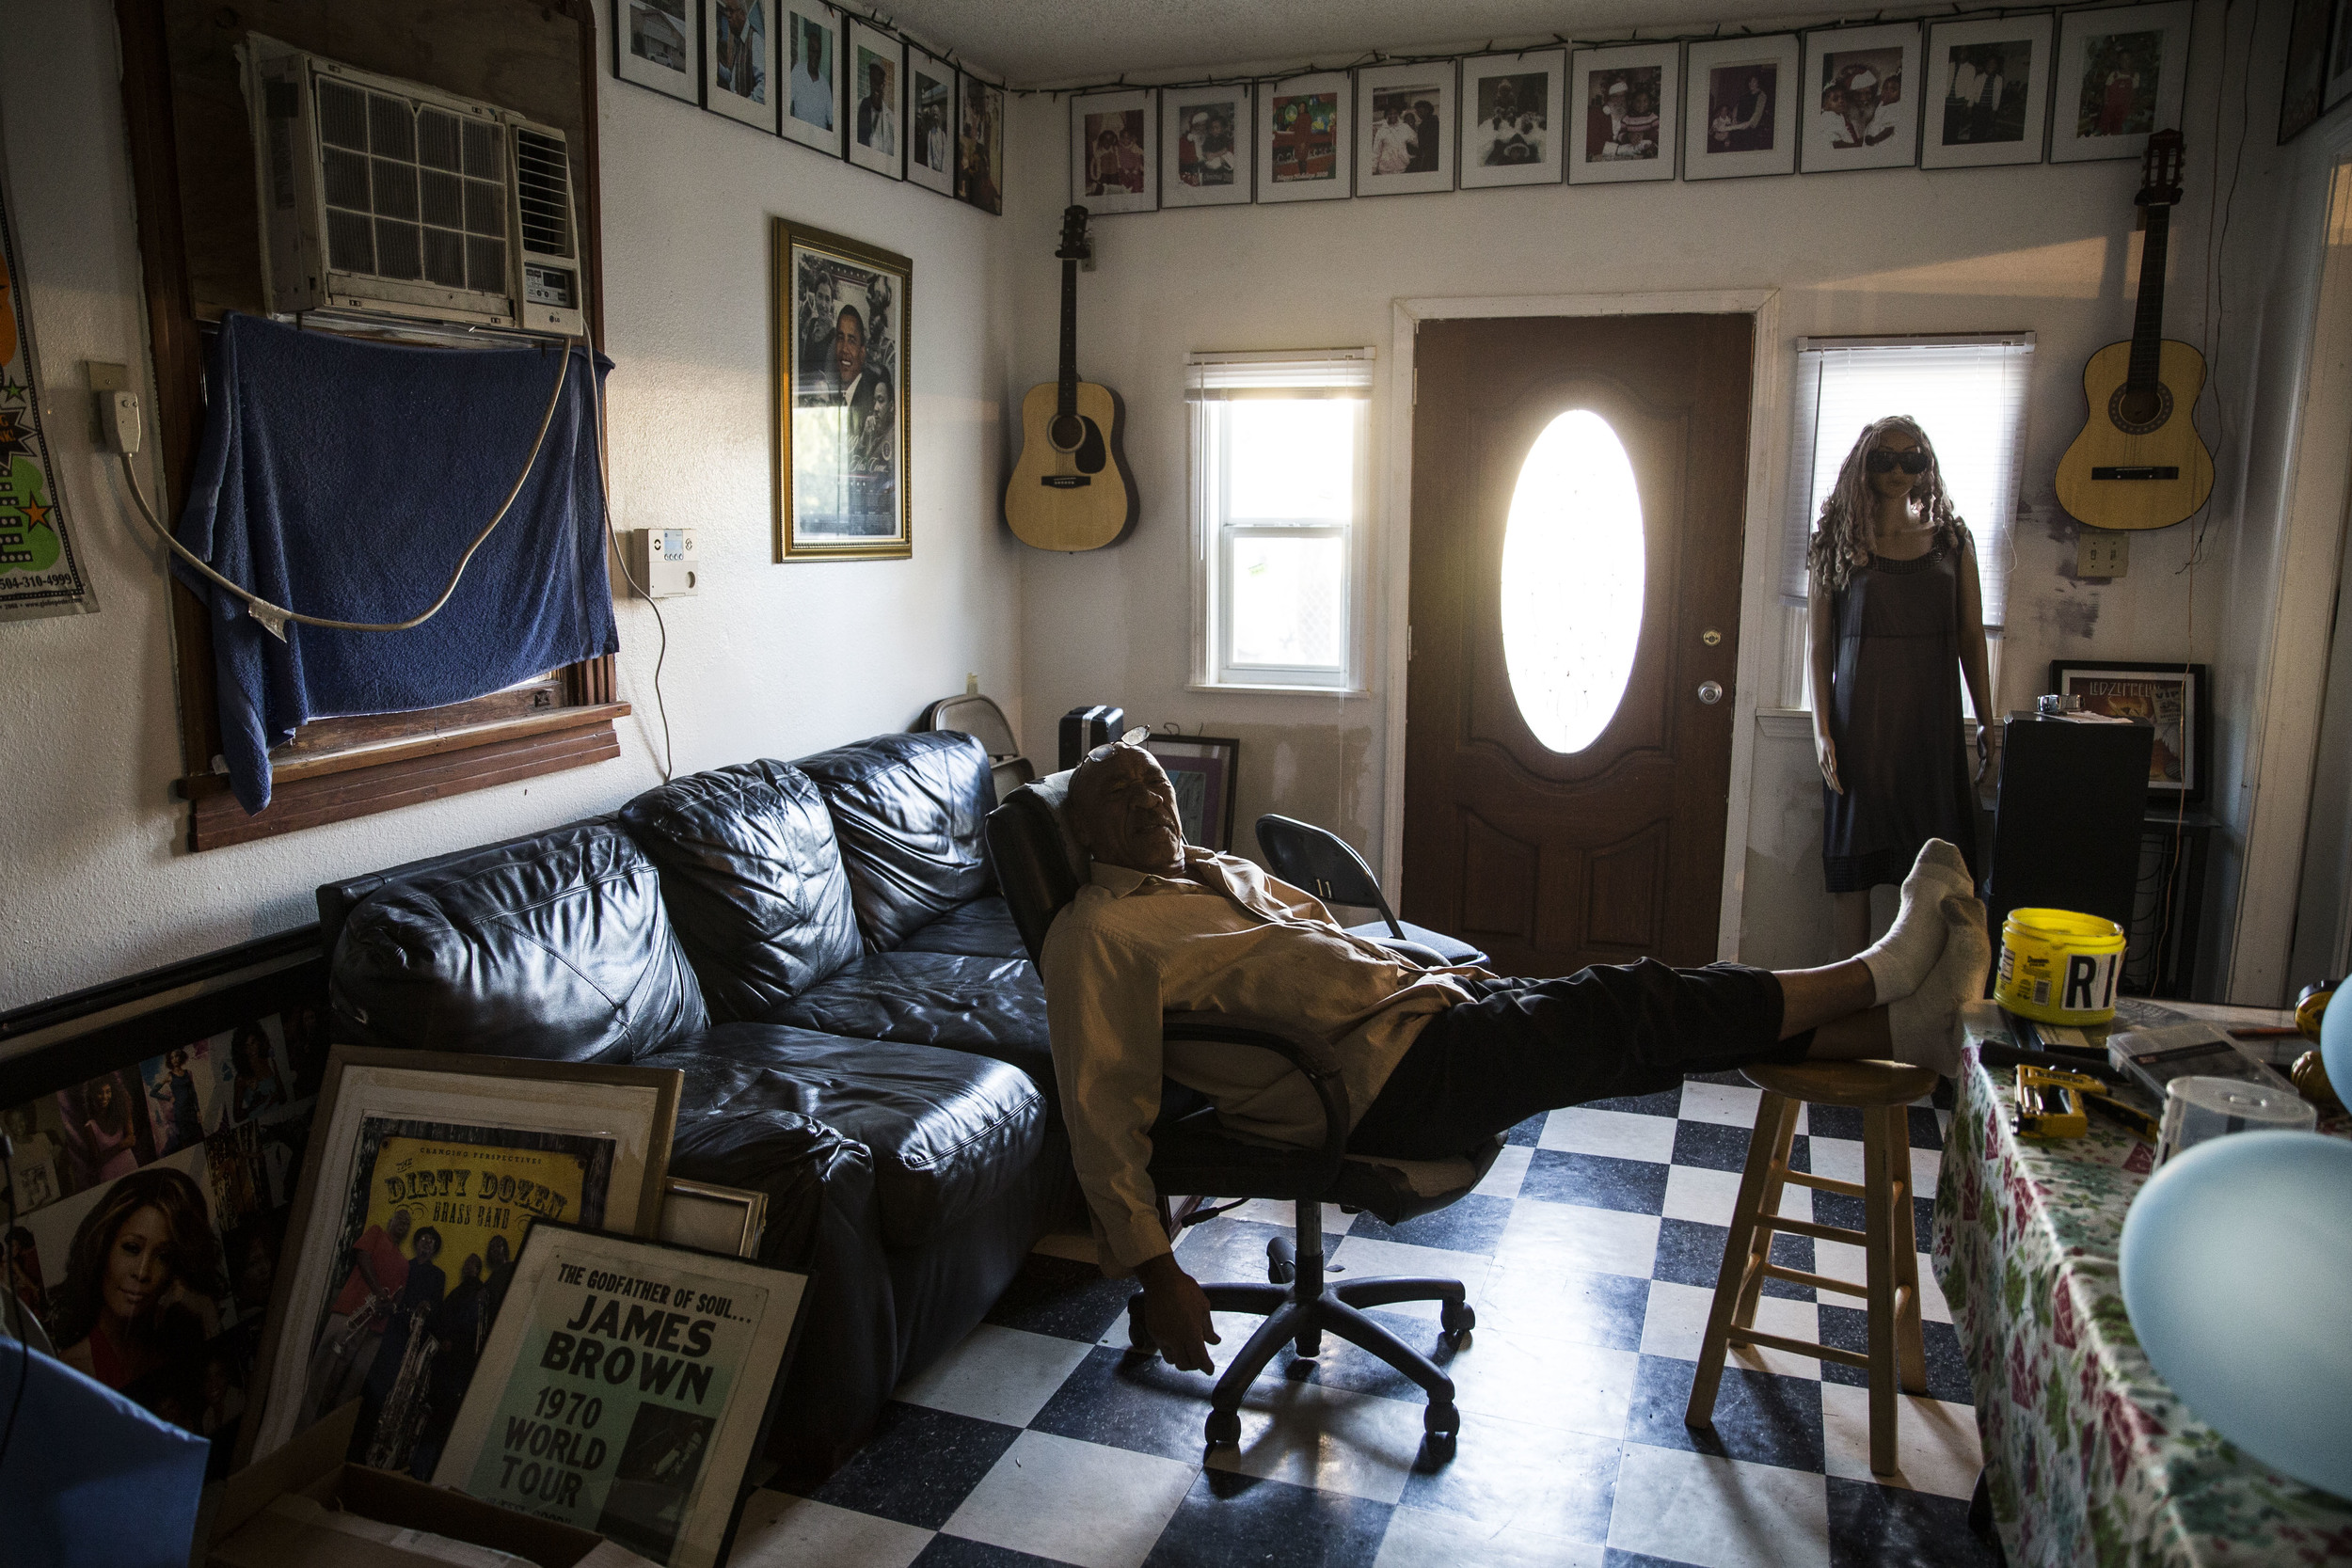 'Mister Dave', 9th ward resident, started a local culture museum at his house